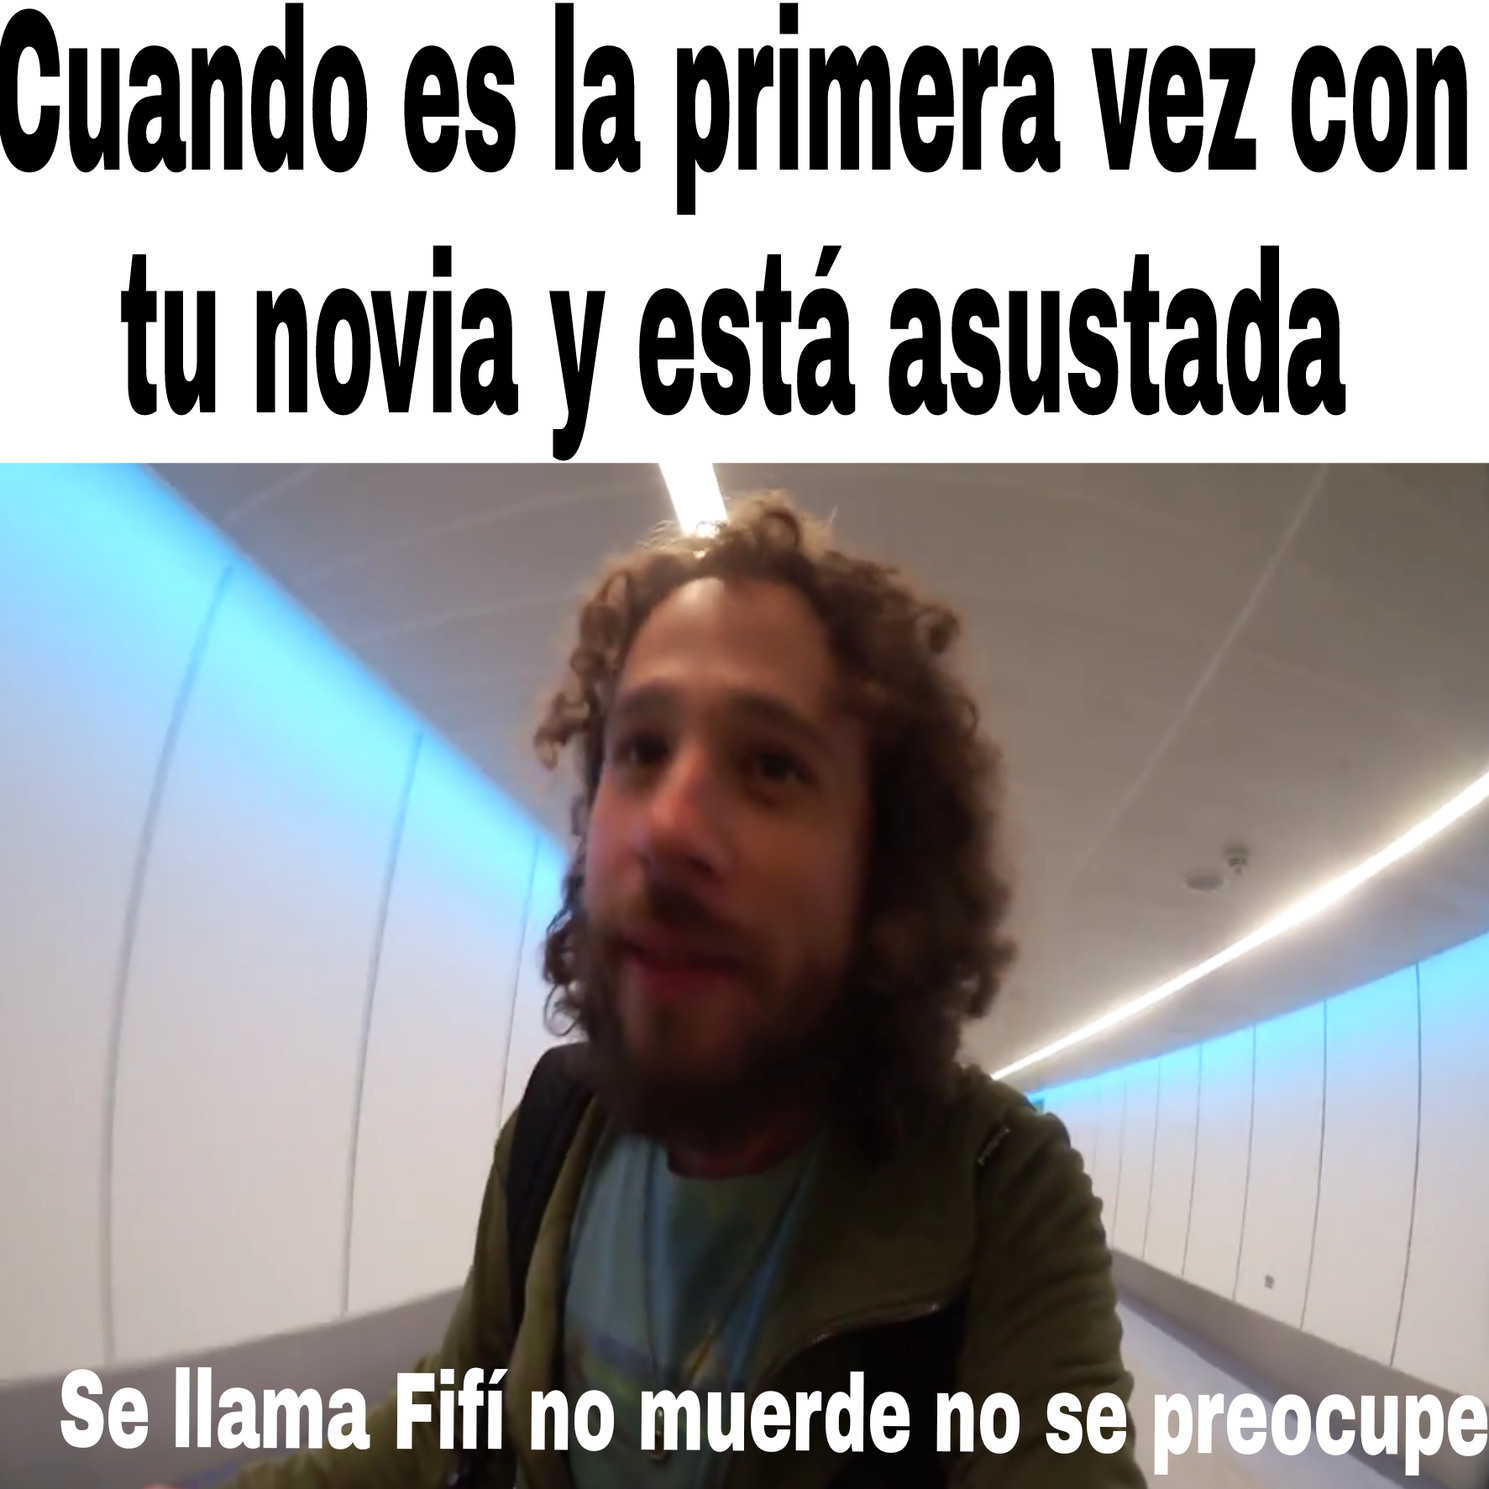 Nueva plantilla en 2 minutos de video - meme